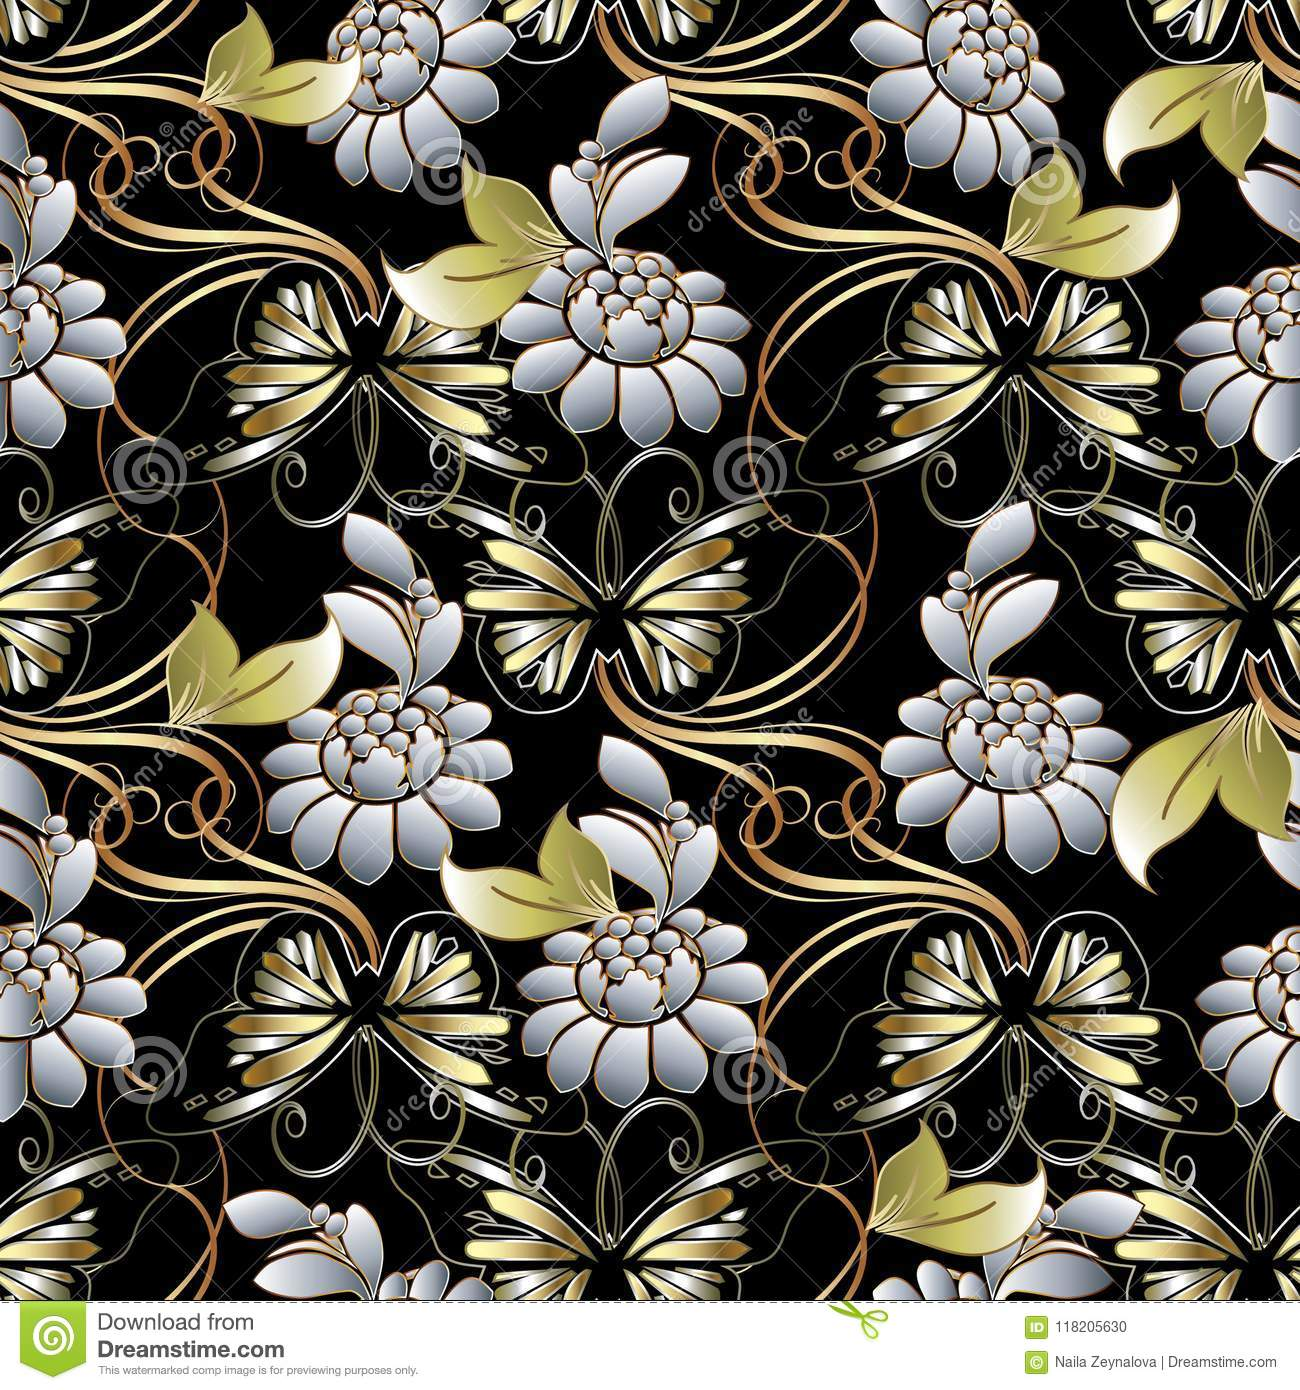 Modern Black Floral Background Wallpaper Illustration With Gold Butterflies White 3d Flowers Green Leaves And Swirl Line Art Tracery Ornament